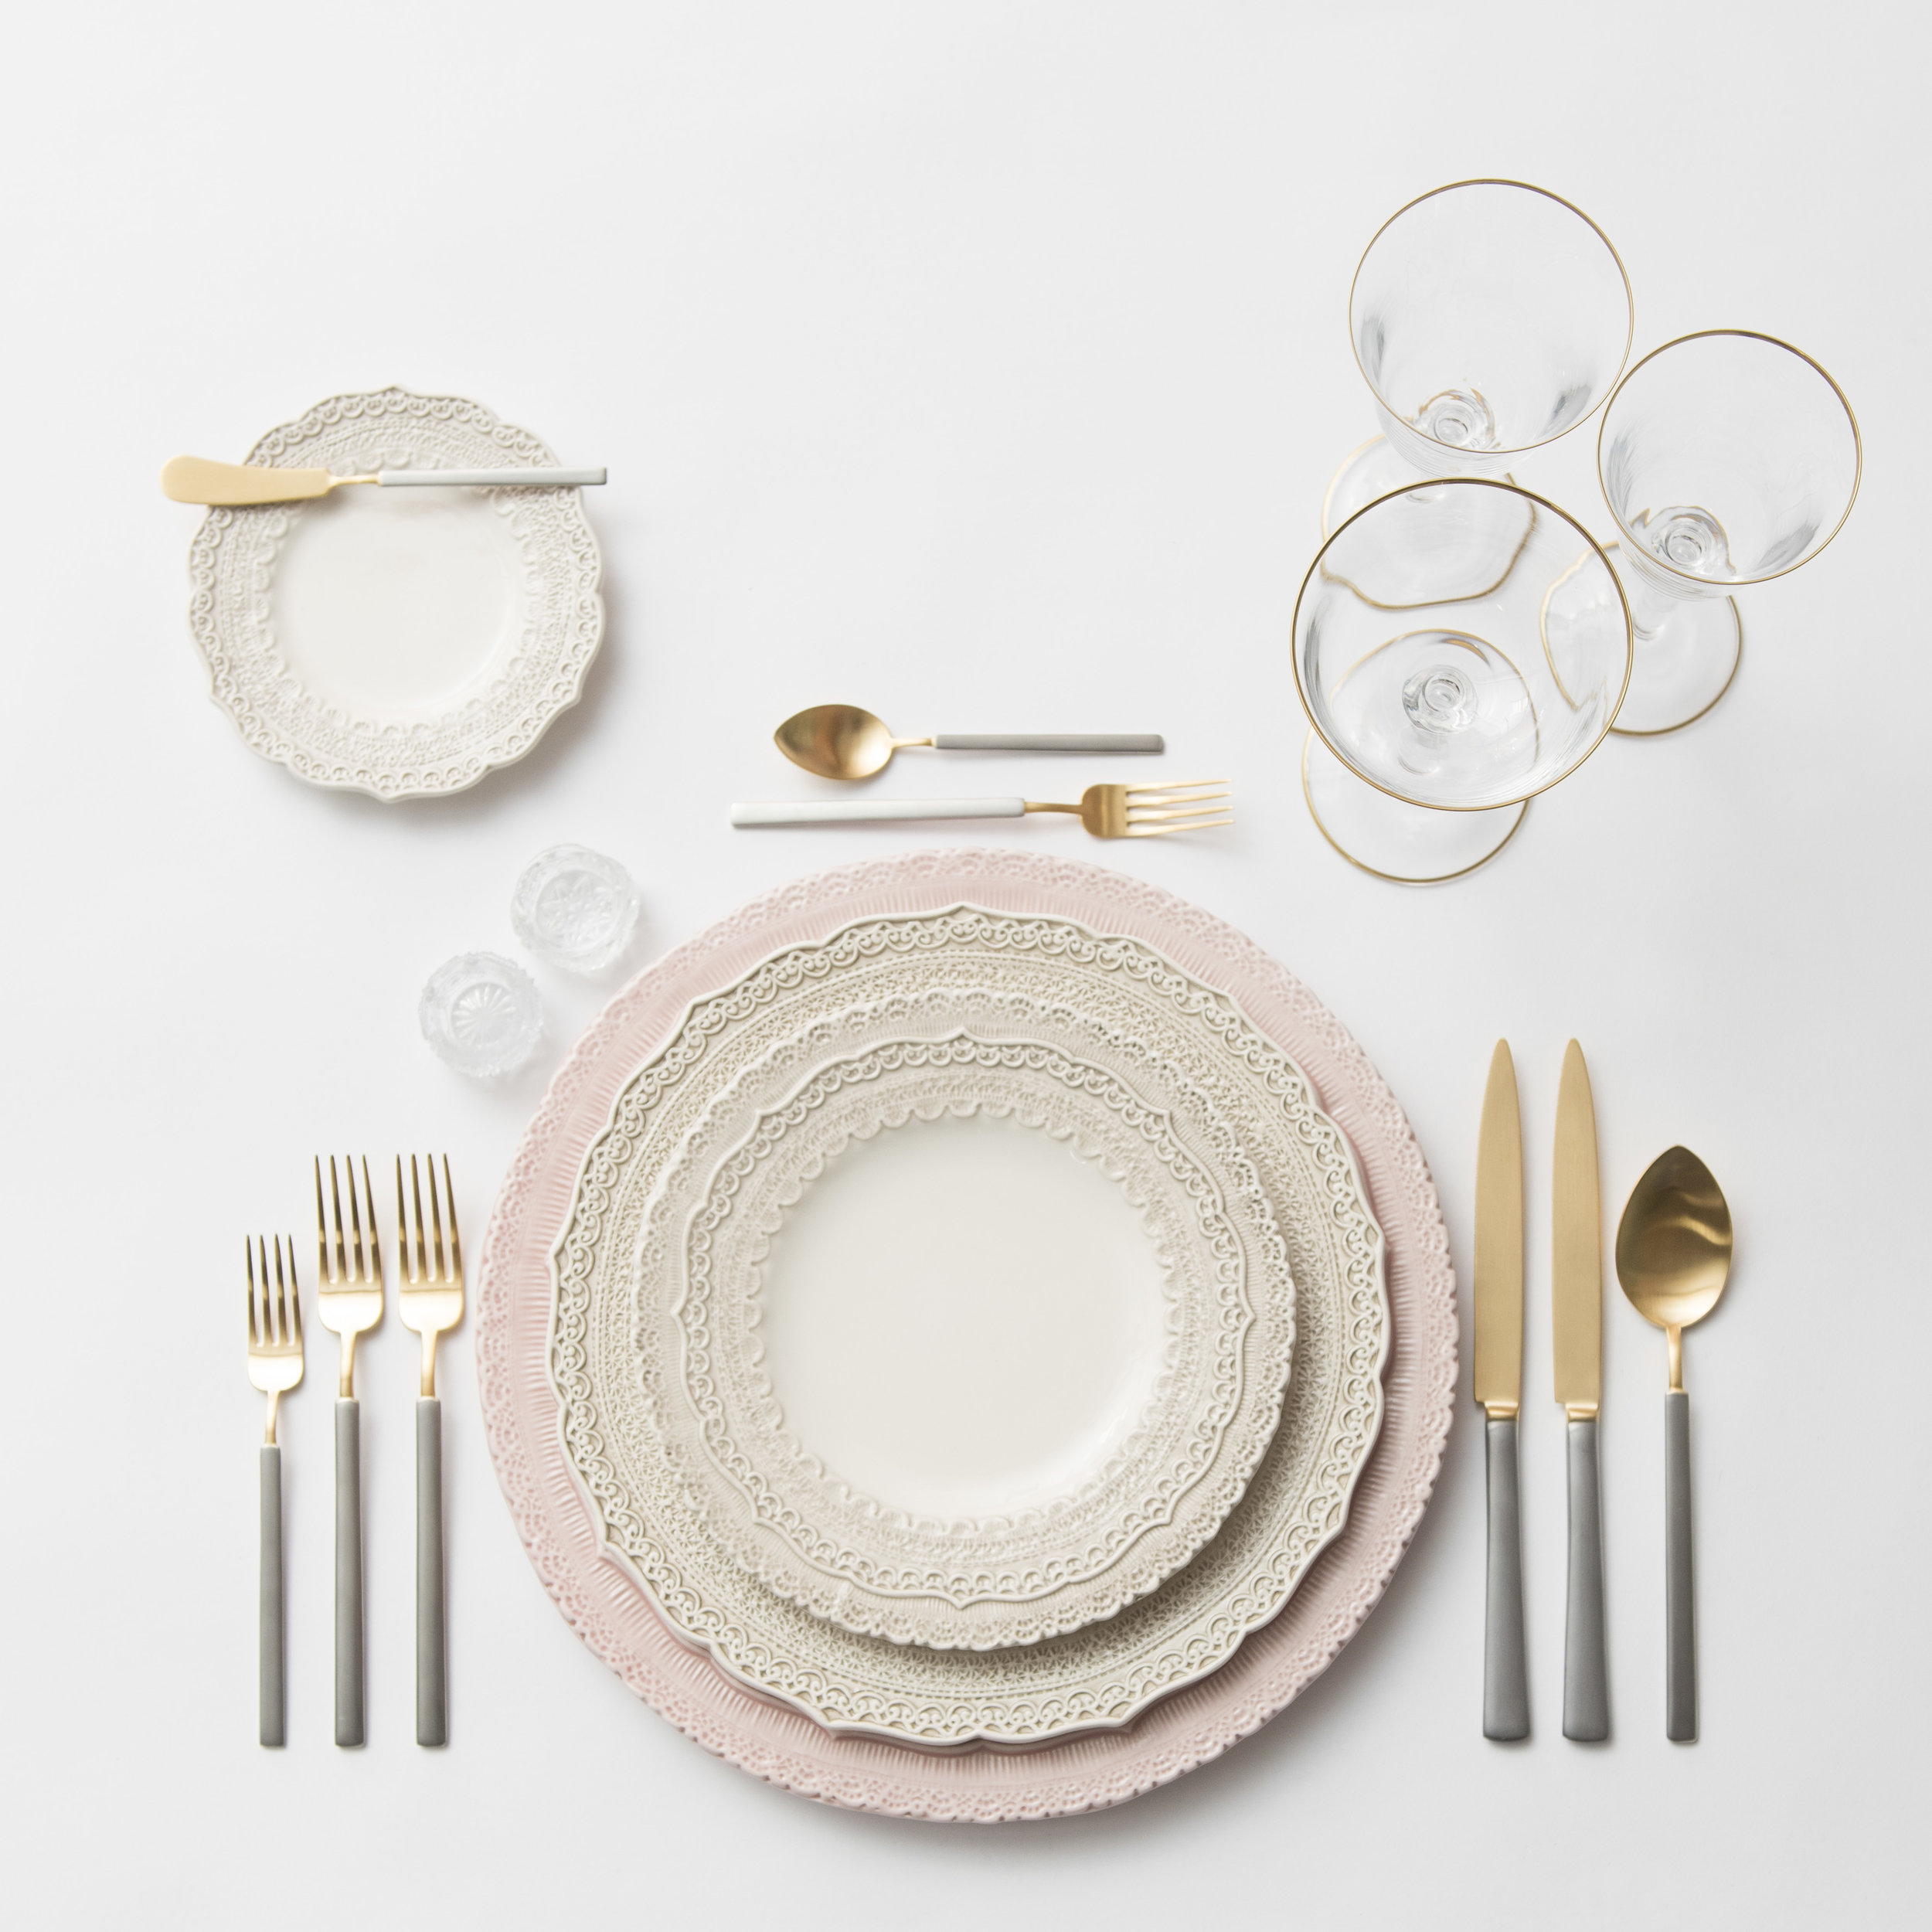 RENT: Lace Chargers in Blush + Lace Dinnerware in White + Axel Flatware in Matte 24k Gold/Silver + Chloe 24k Gold Rimmed Stemware + Antique Crystal Salt Cellars  SHOP: Chloe 24k Gold Rimmed Stemware